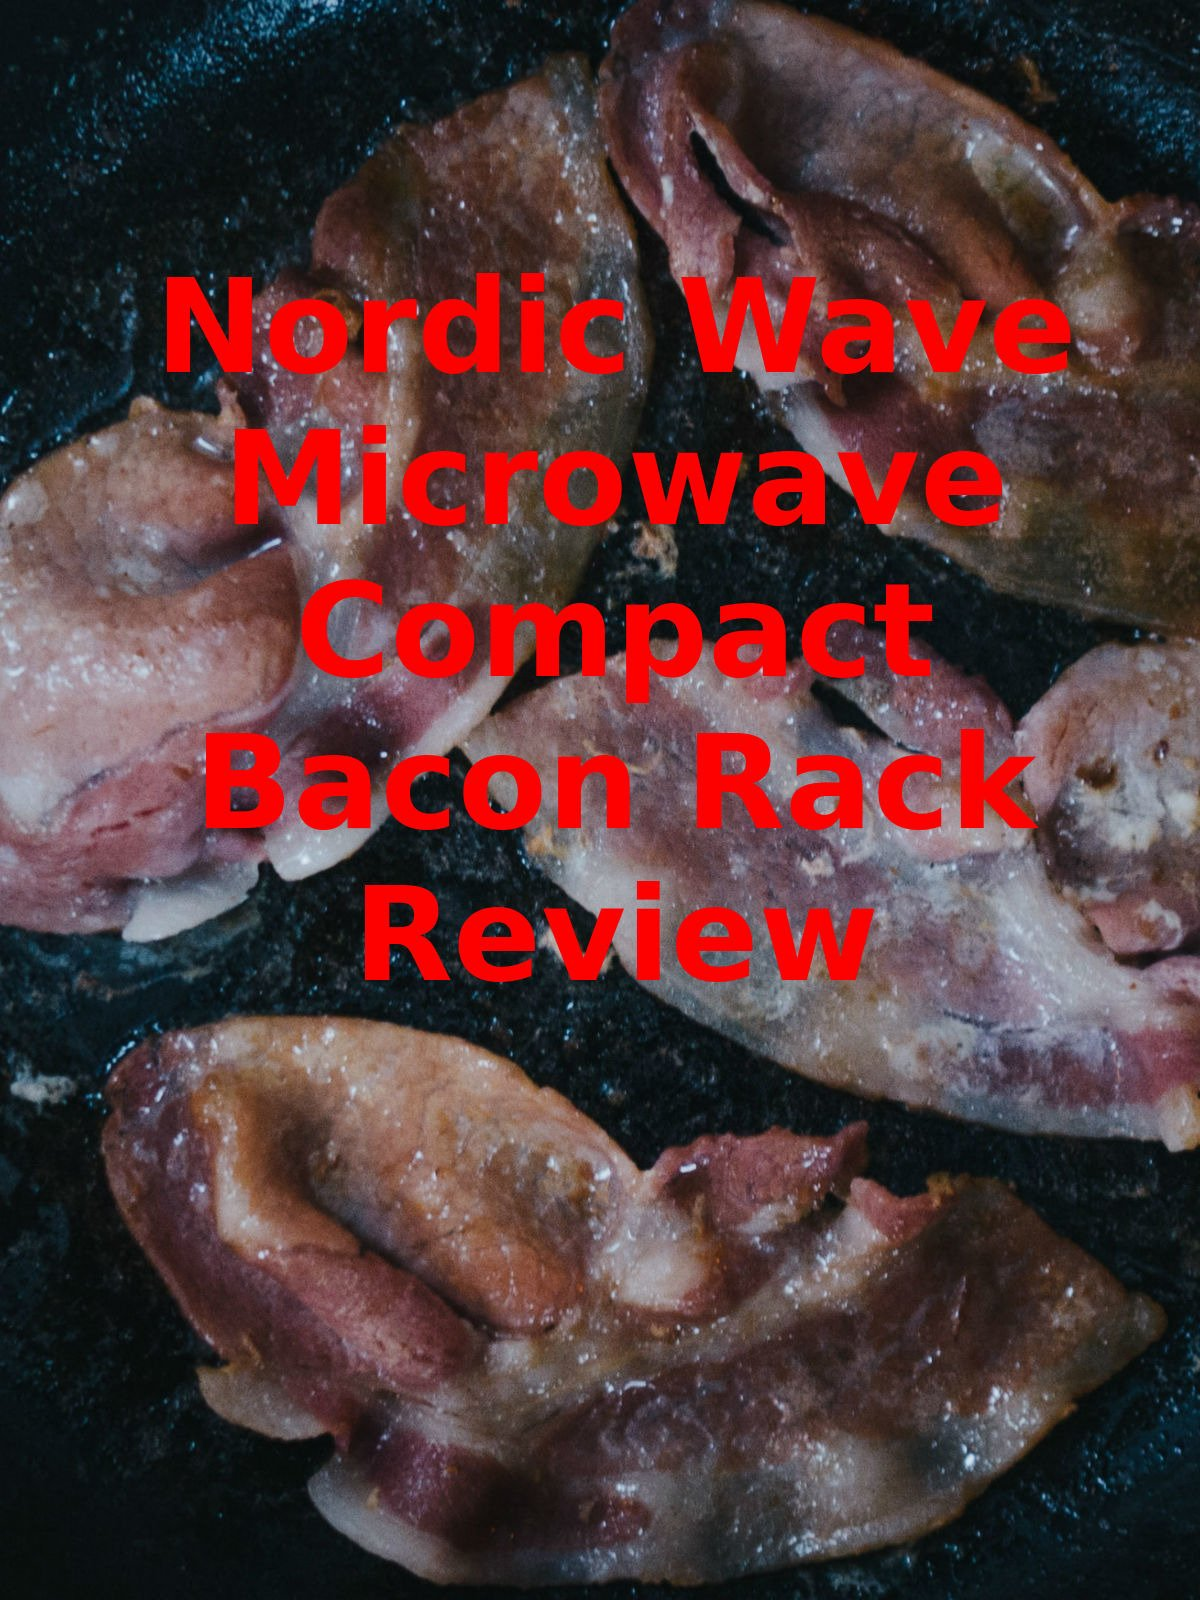 Review: Nordic Wave Microwave Compact Bacon Rack Review